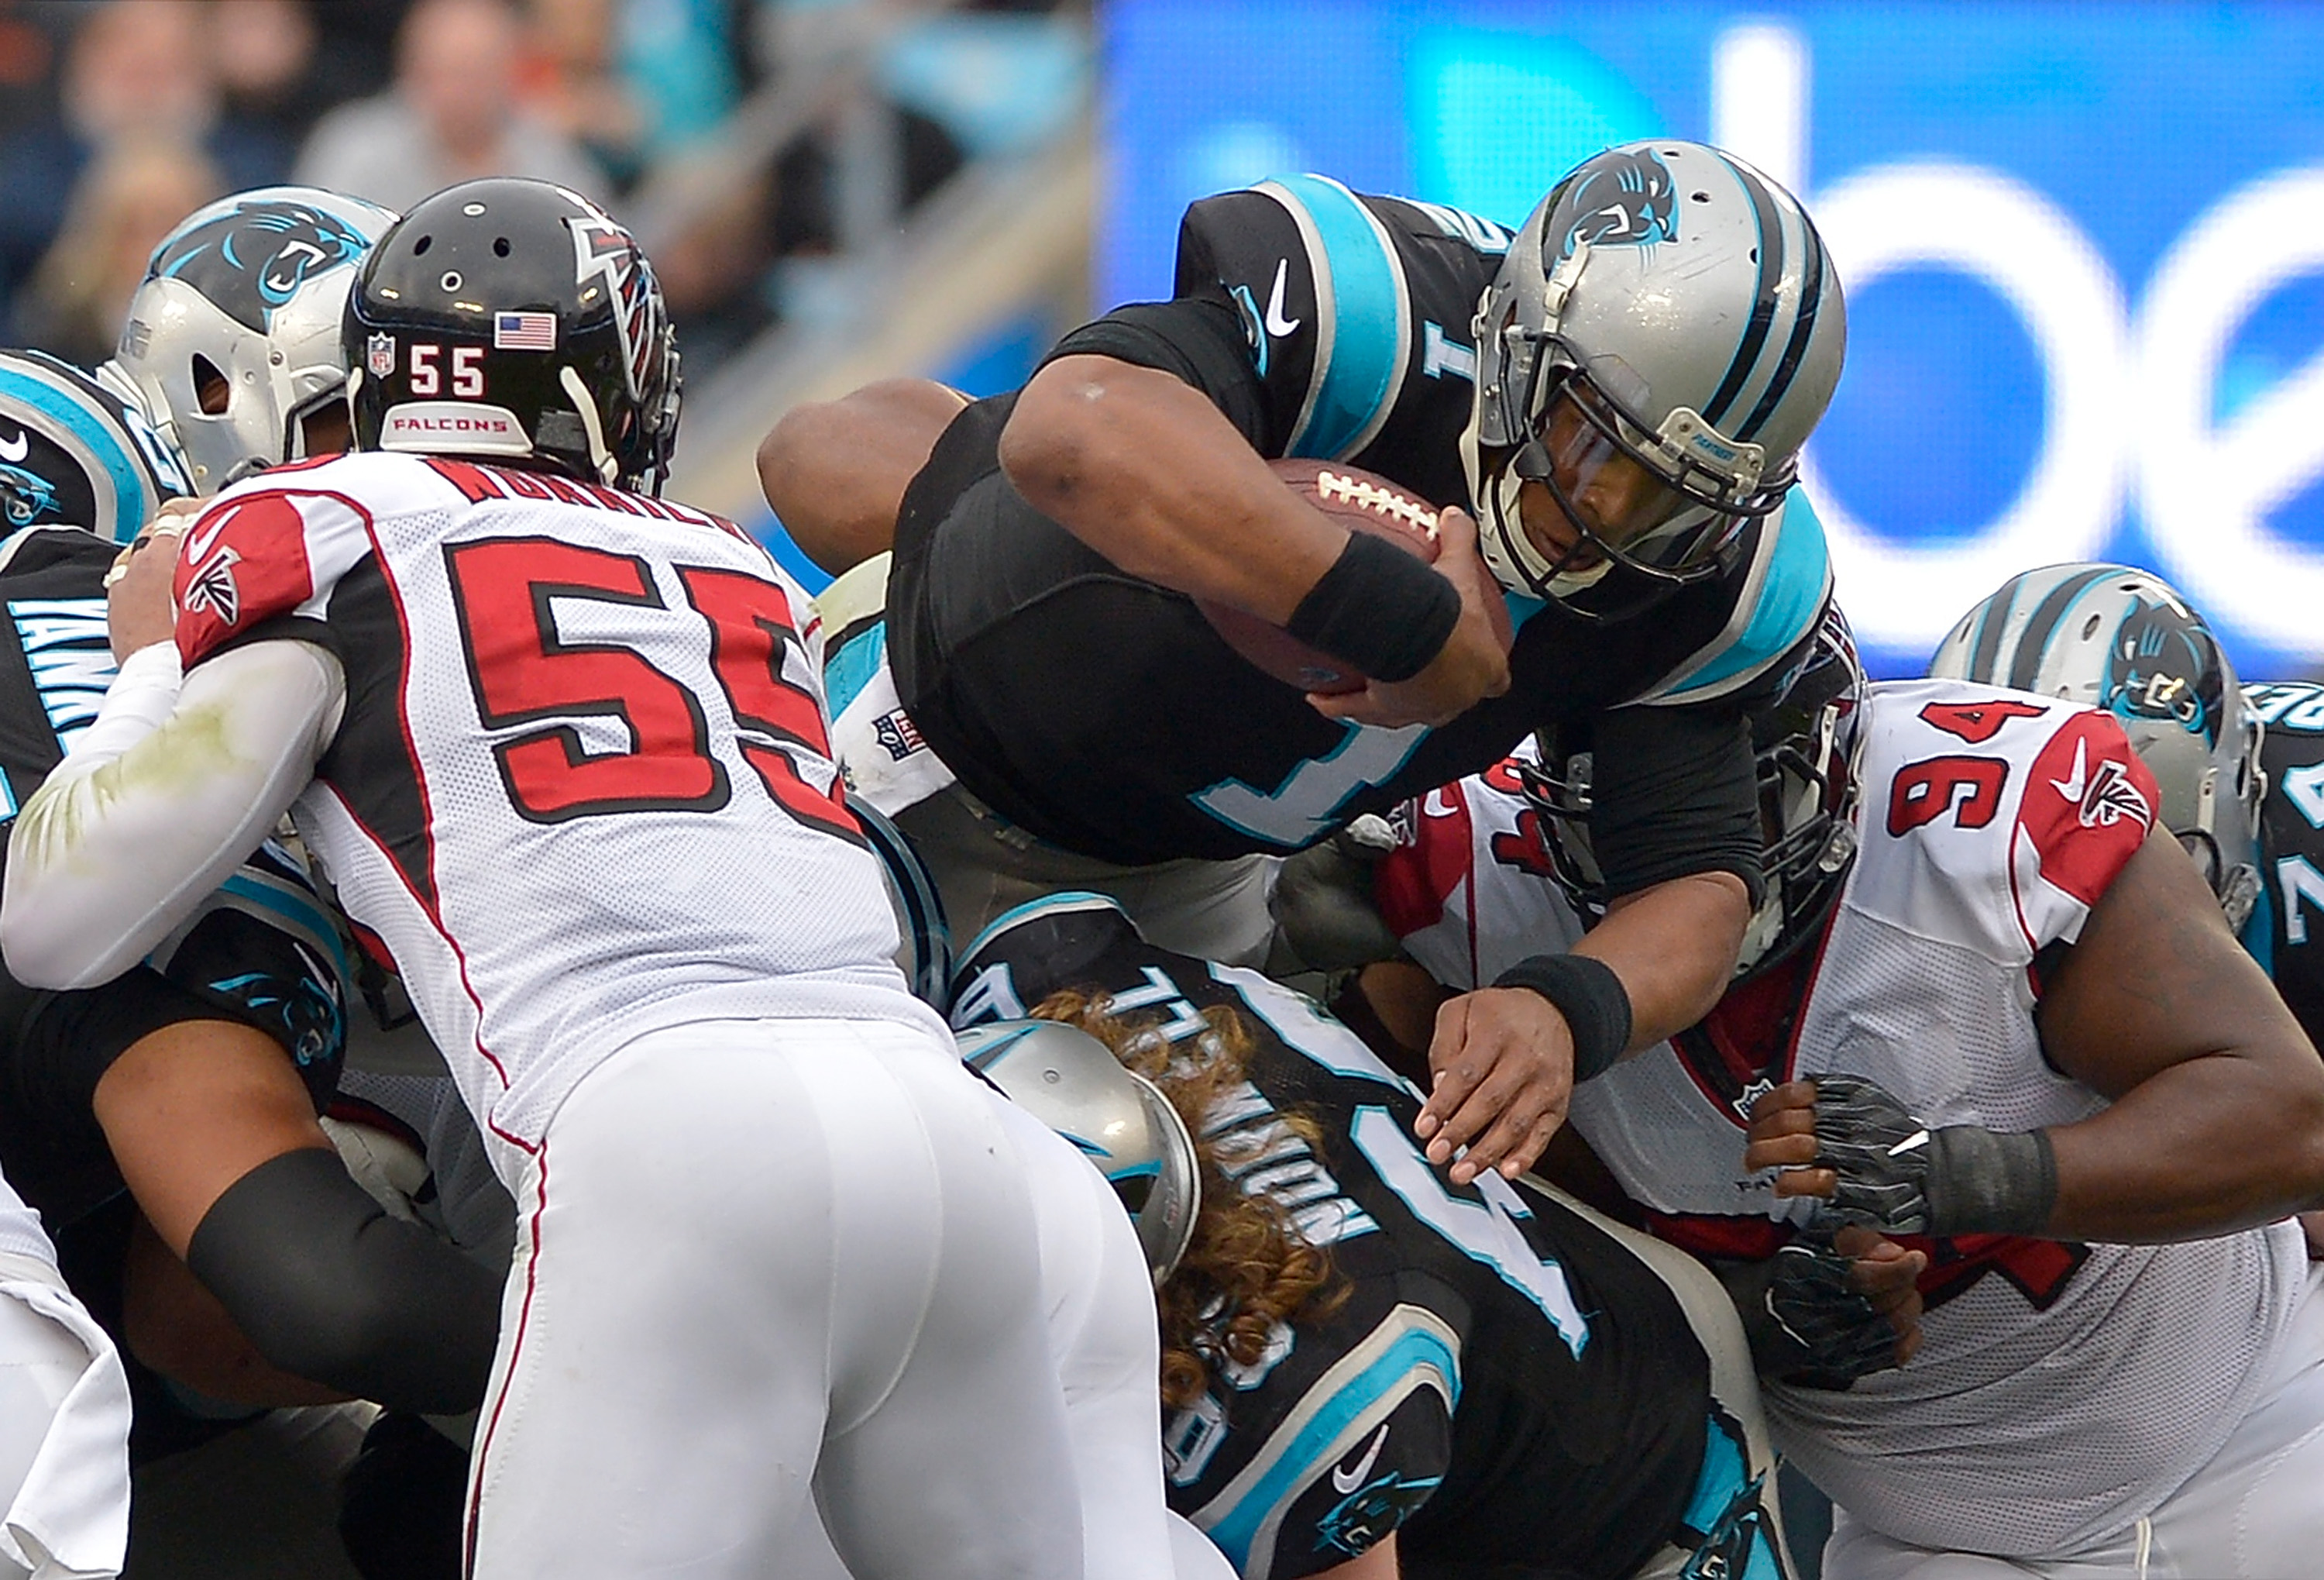 Panthers running game comes alive in 20-17 win over Falcons